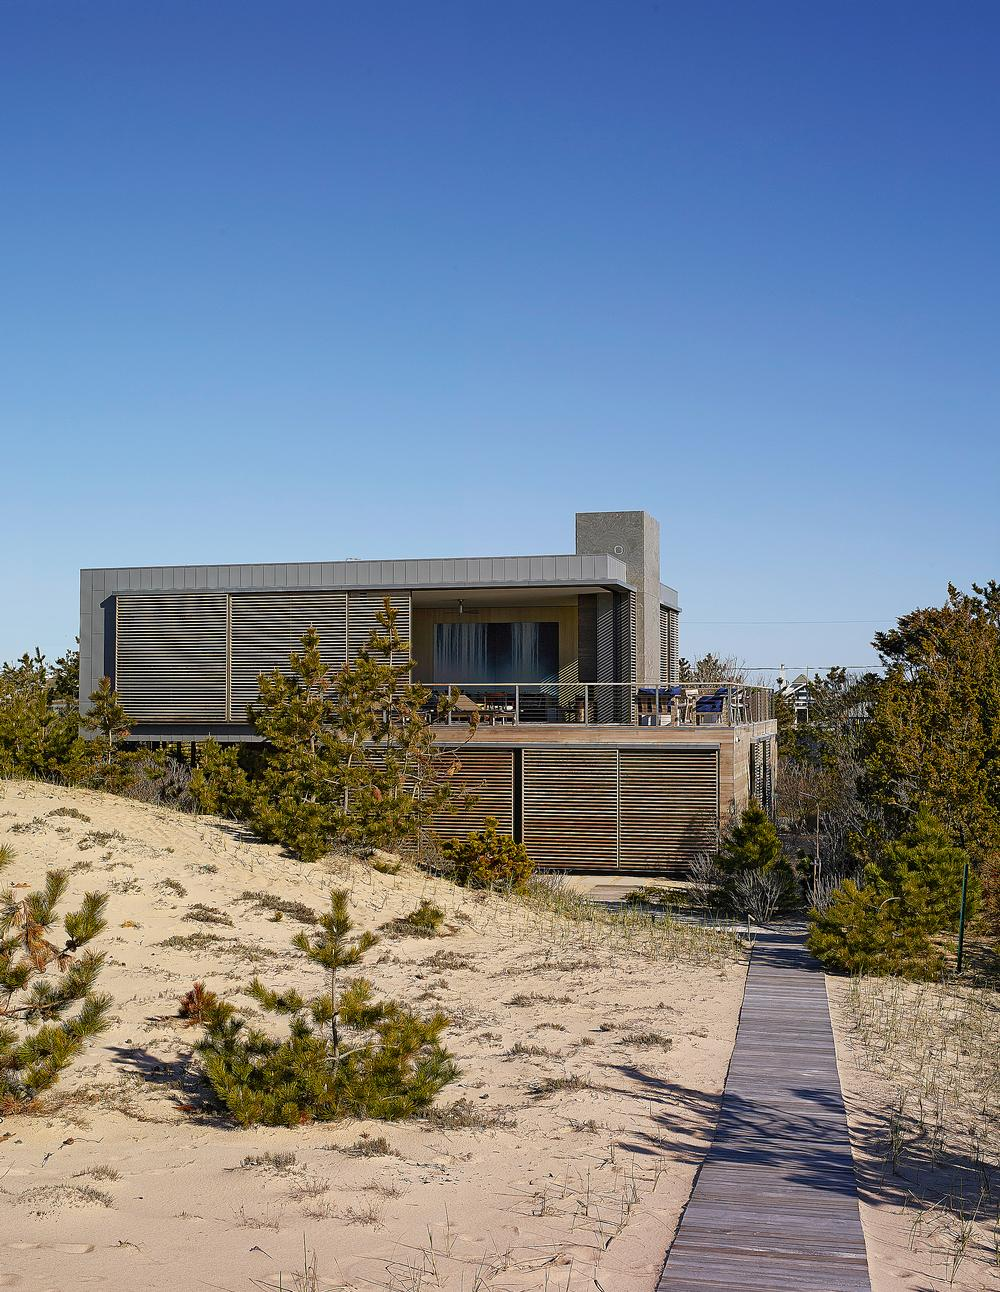 Yabu and Pushelberg's self-designed beach house in Amagansett, NY